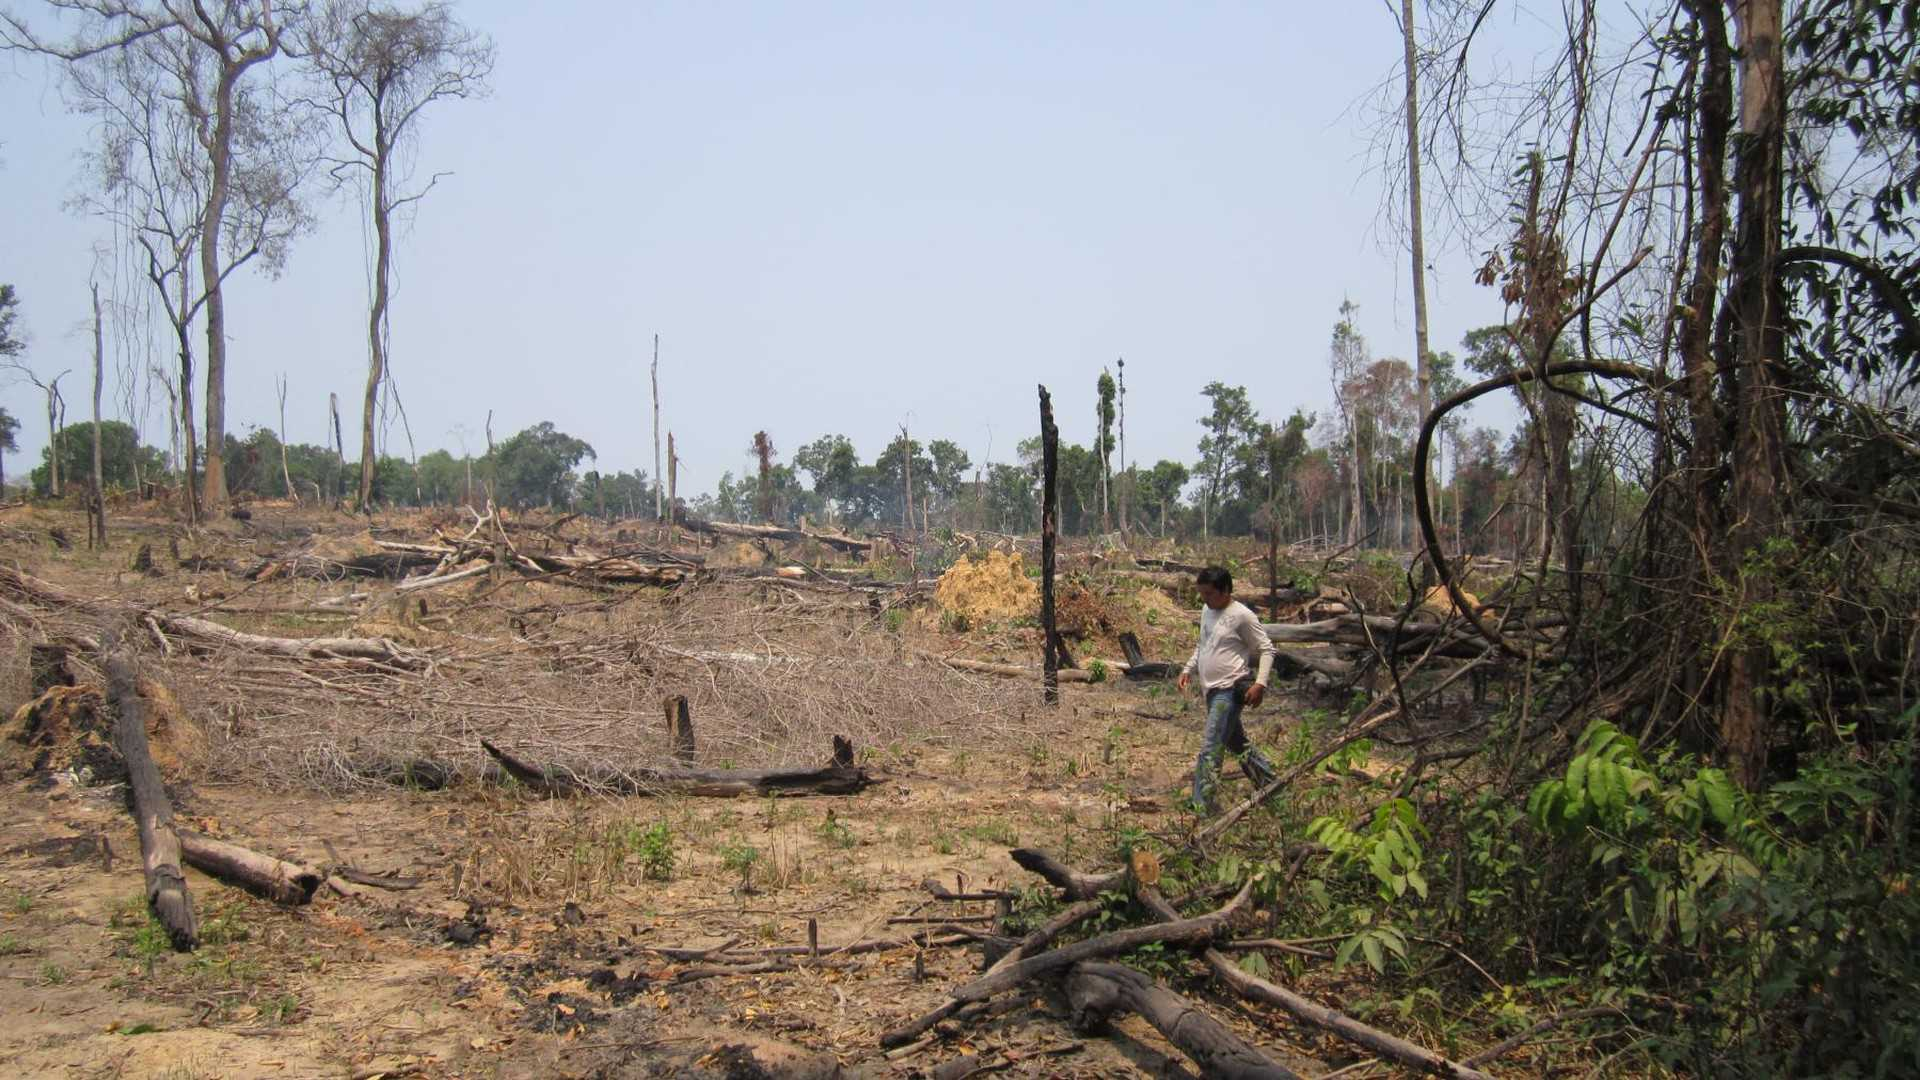 A Cambodian man walking through the remains of a destroyed patch of tropical rainforest.